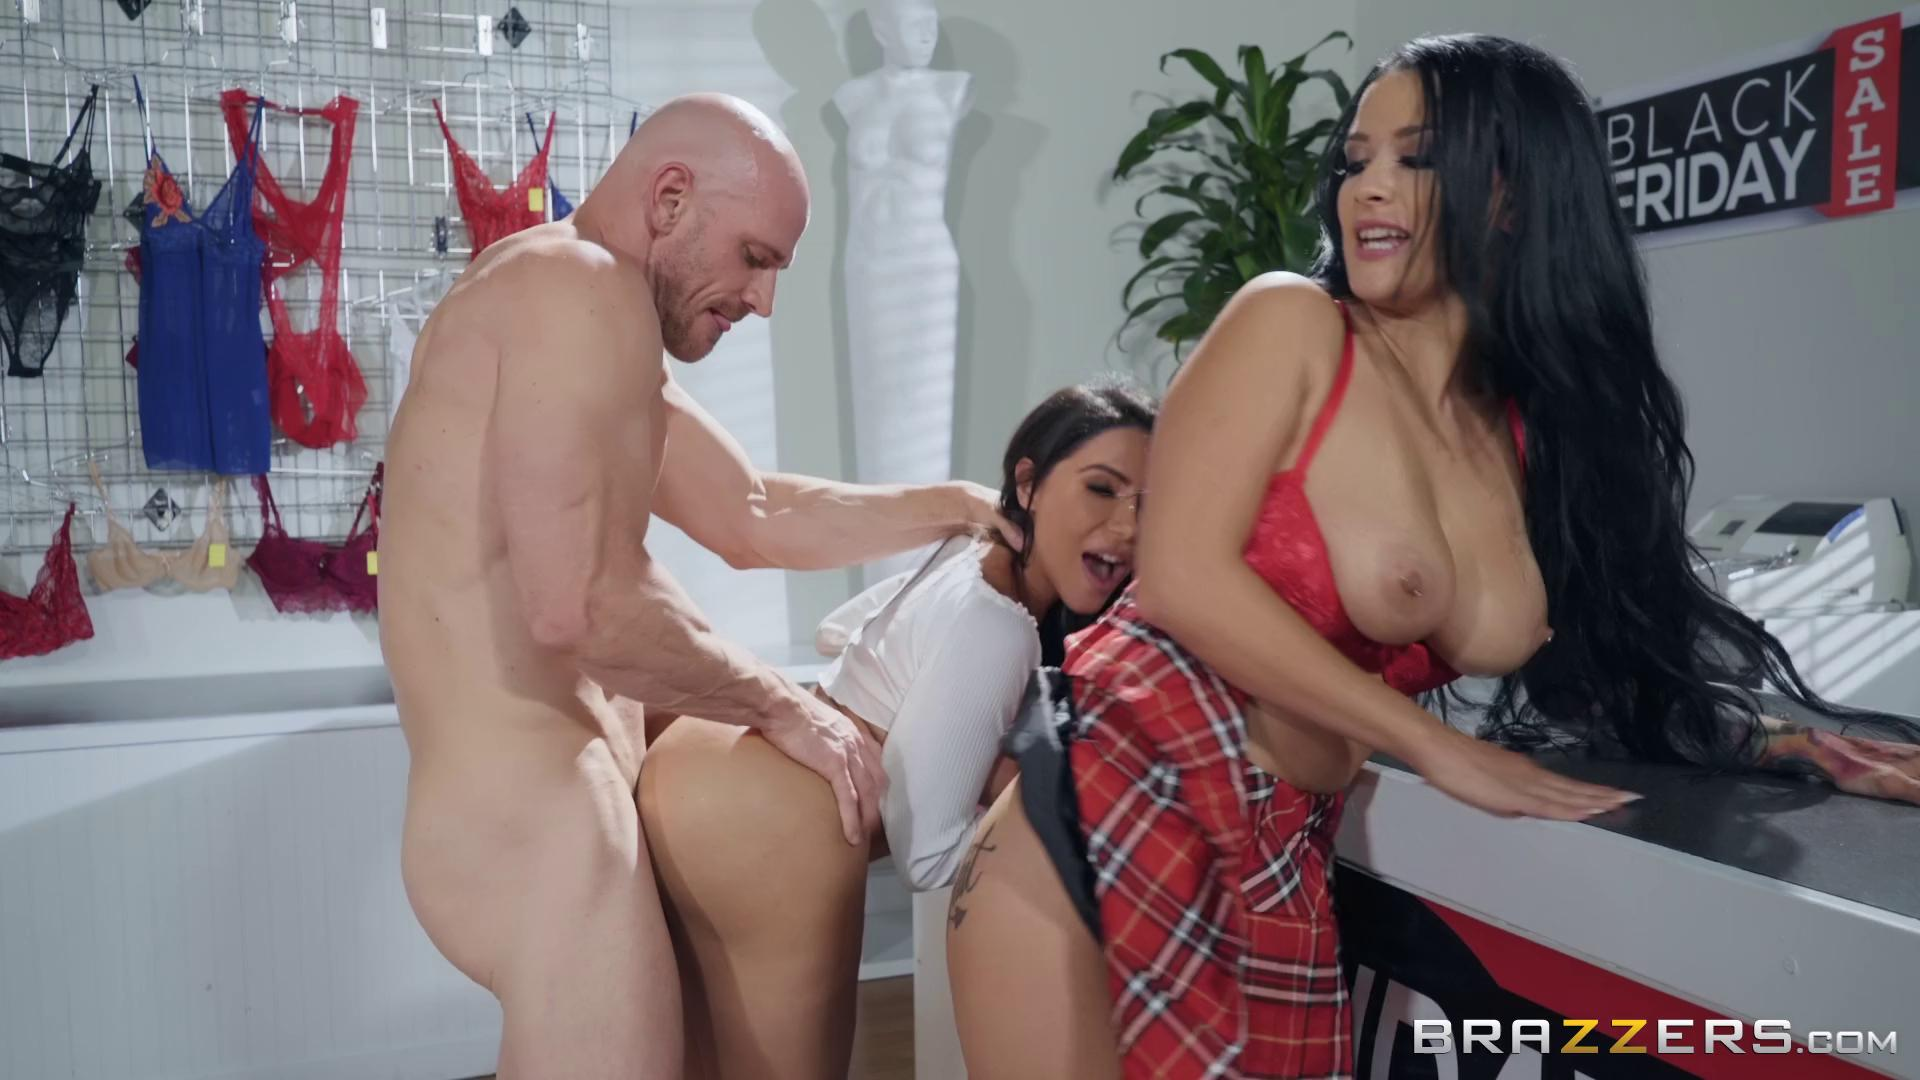 Lela Star And Katrina Jade Black Friday Fuckfest